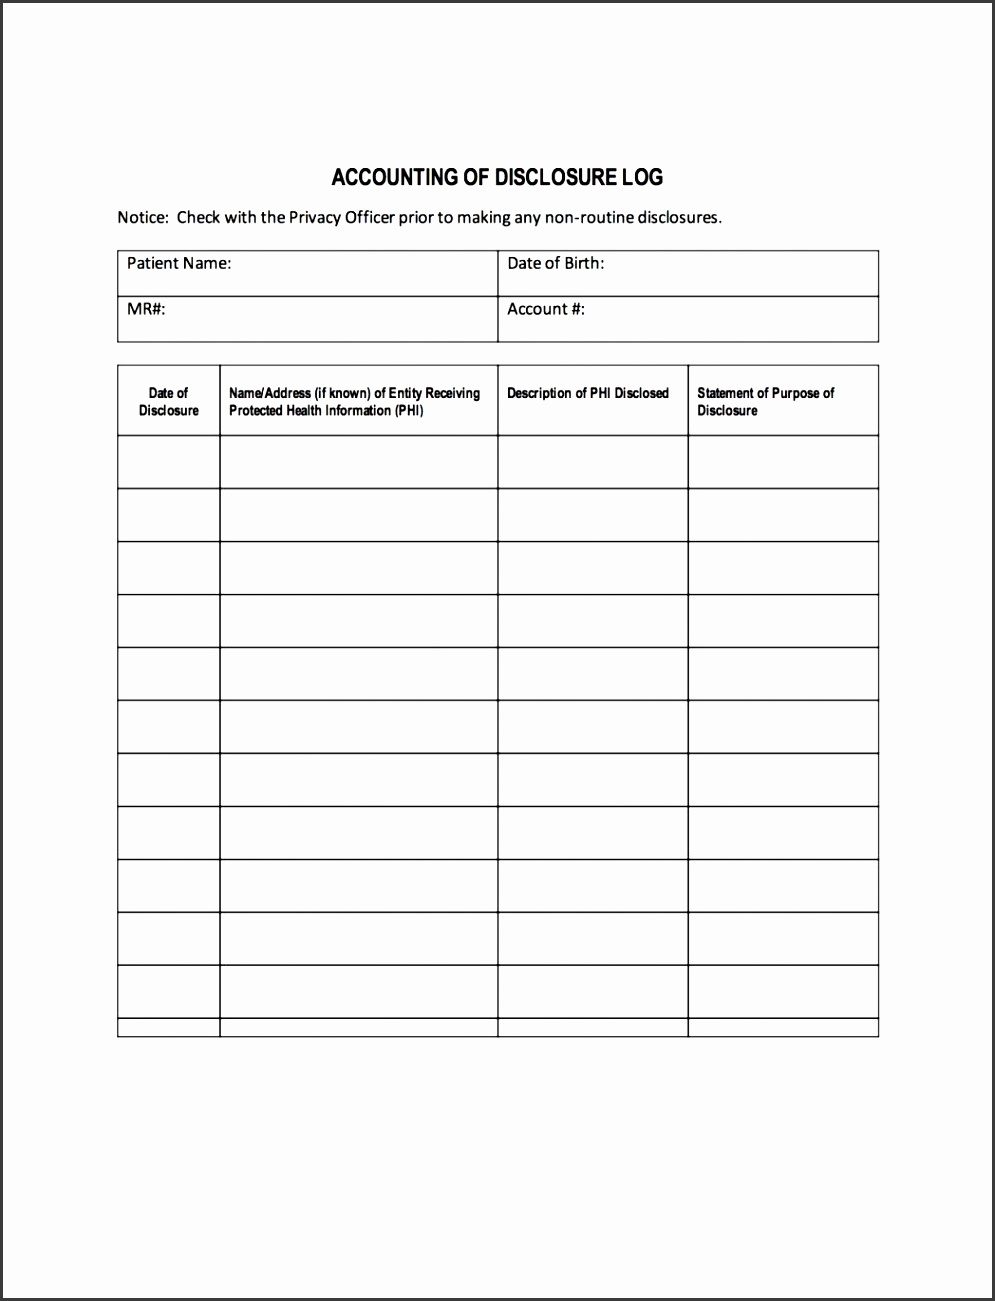 10 general ledger template pdf - sampletemplatess